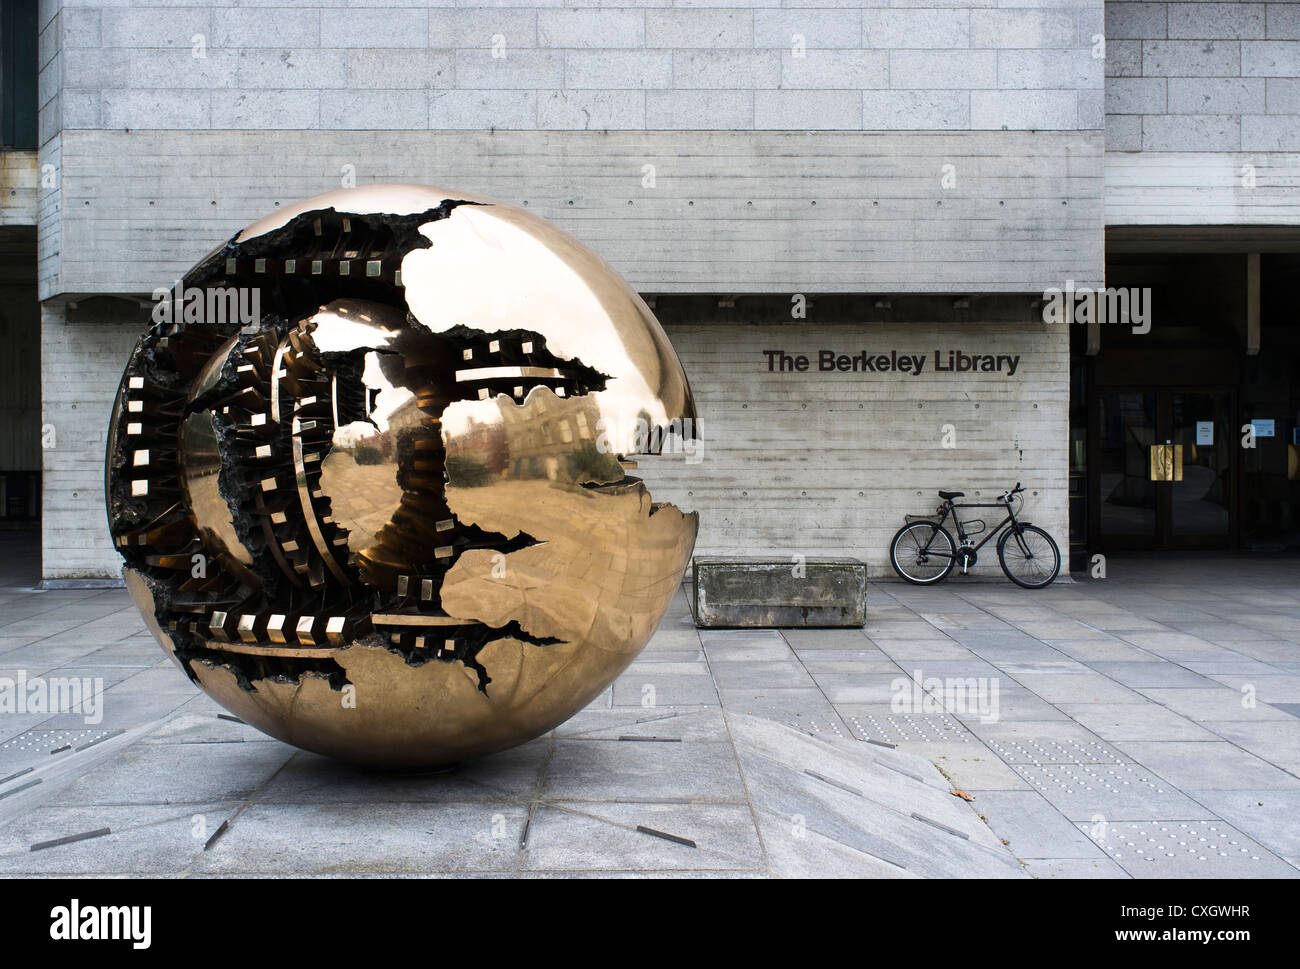 Sphere within a sphere by Arnaldo Pomodoro, Trinity College, Dublin, Ireland with The Berkeley Library in the background - Stock Image